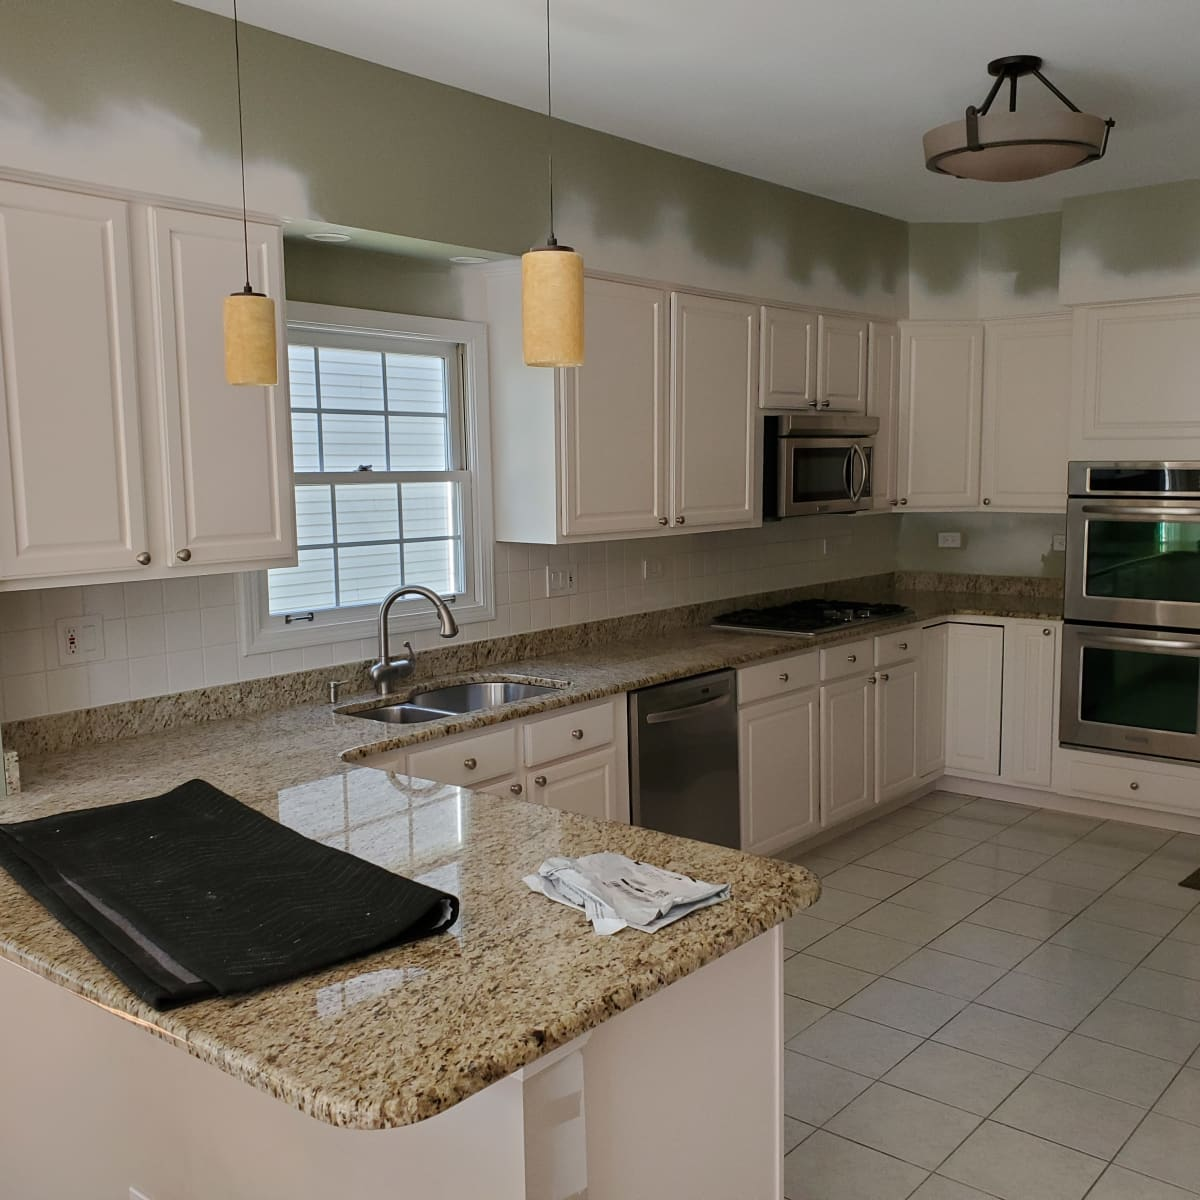 Tips For Painting Cabinets With Lacquer Dengarden Home And Garden